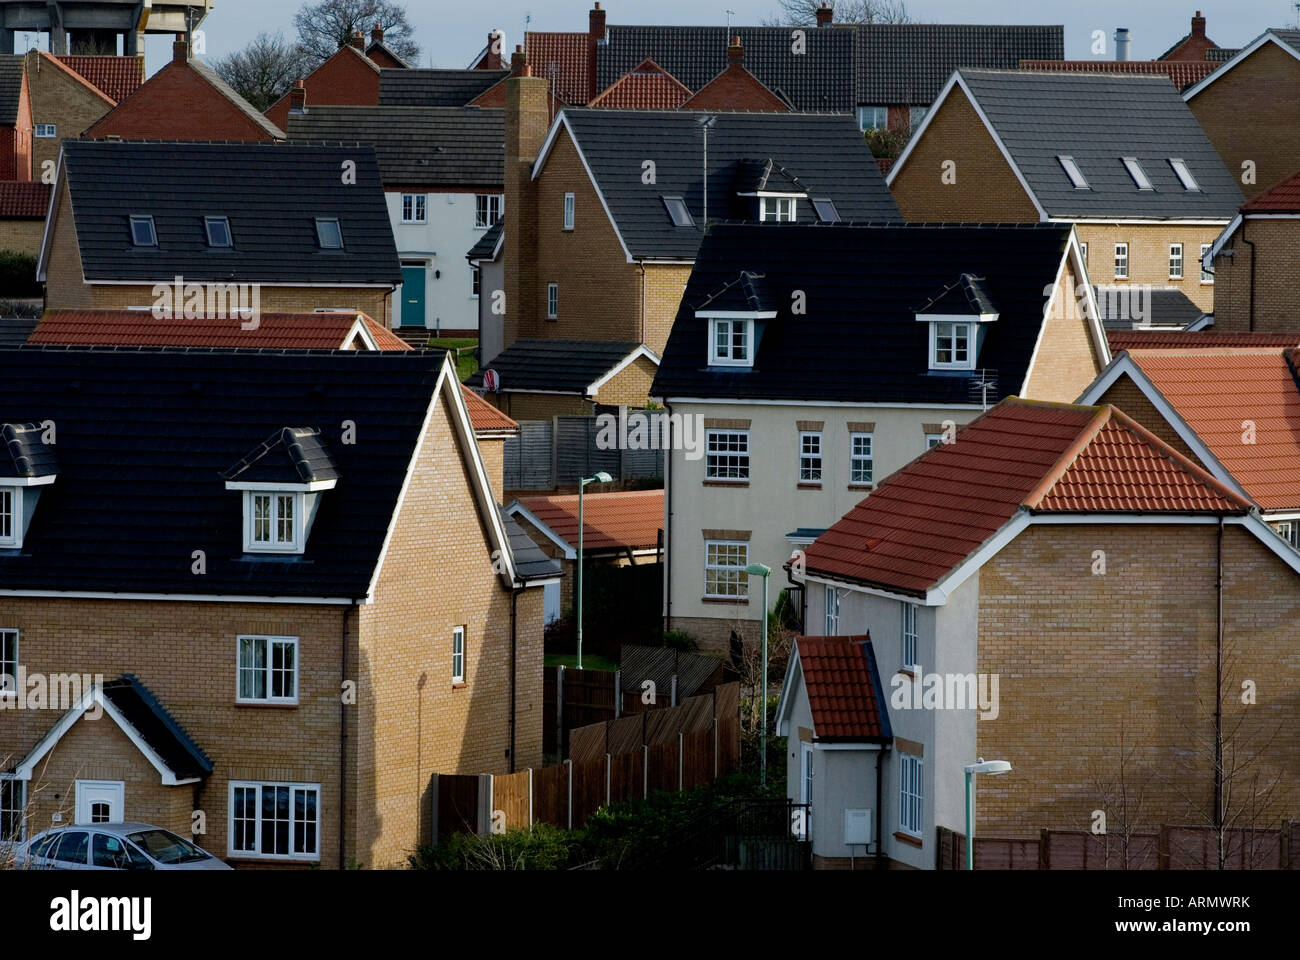 Newhousing modern homes houses estate housing stock image